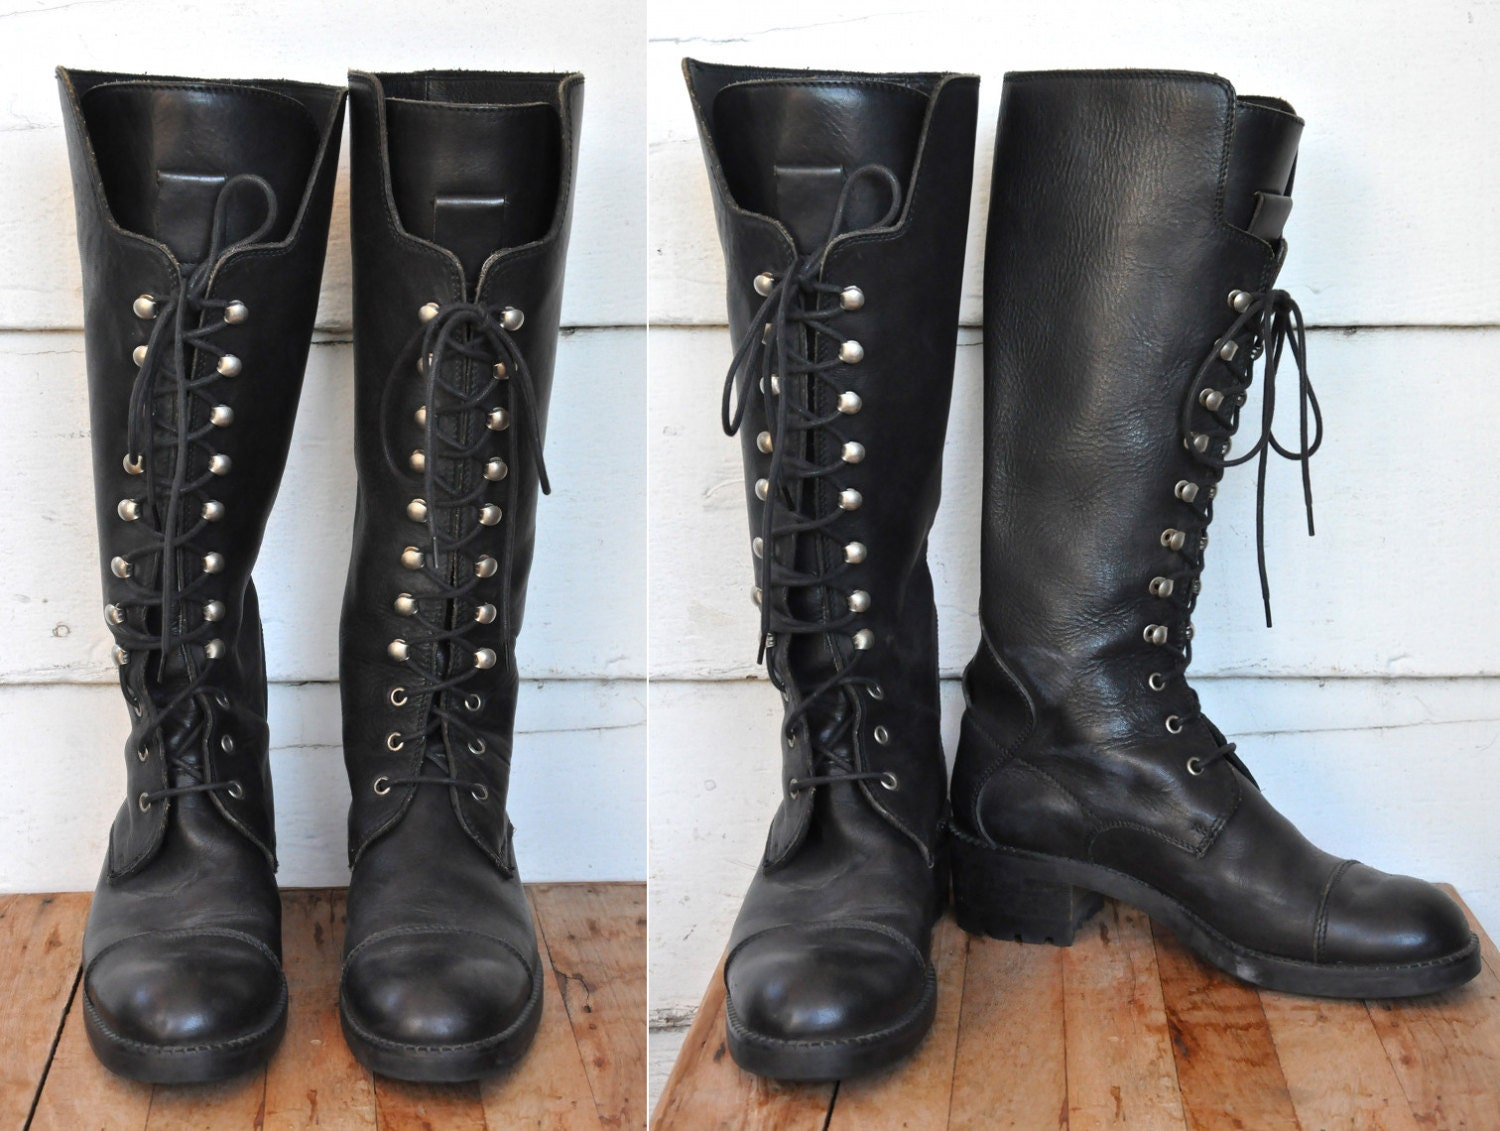 Joan & David COMBAT Boots Lace Up Boots Tall Knee High Black